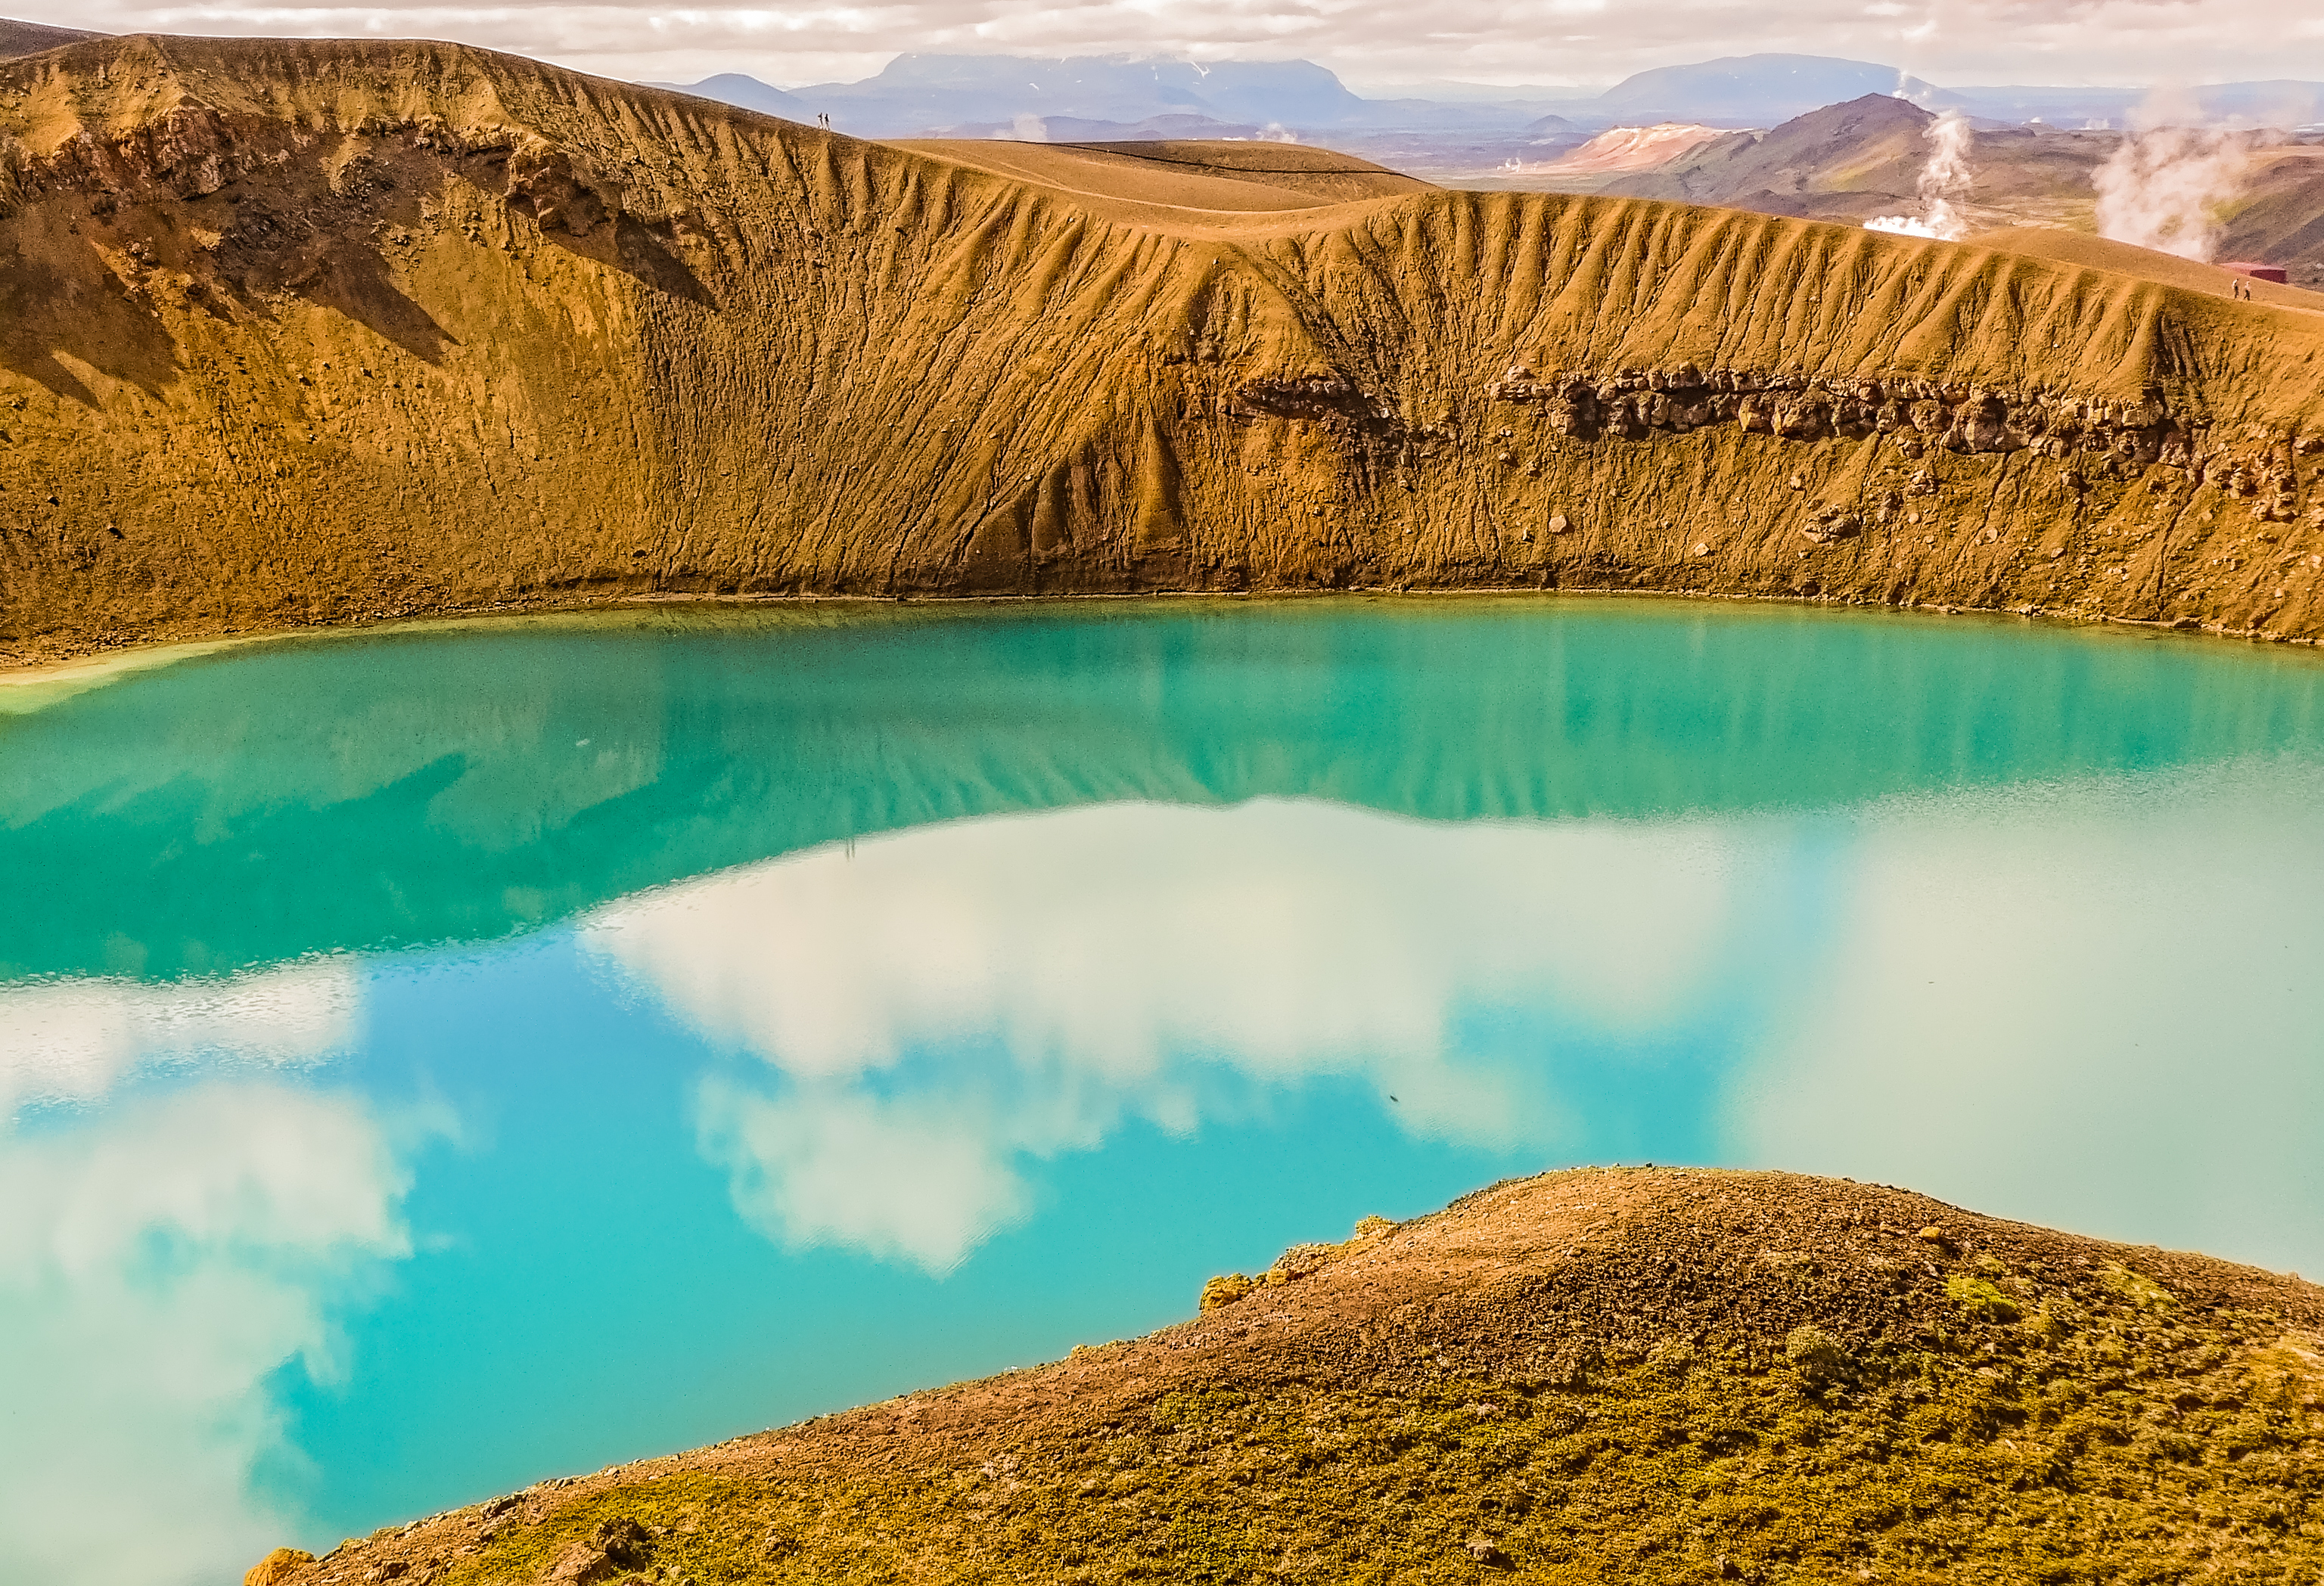 Askja is a volcano in the remote highlands of Iceland. Viti is an explosion crater which now contains a geothermal lake of mineral-rich, opaque blue water that is warm enough for swimming.